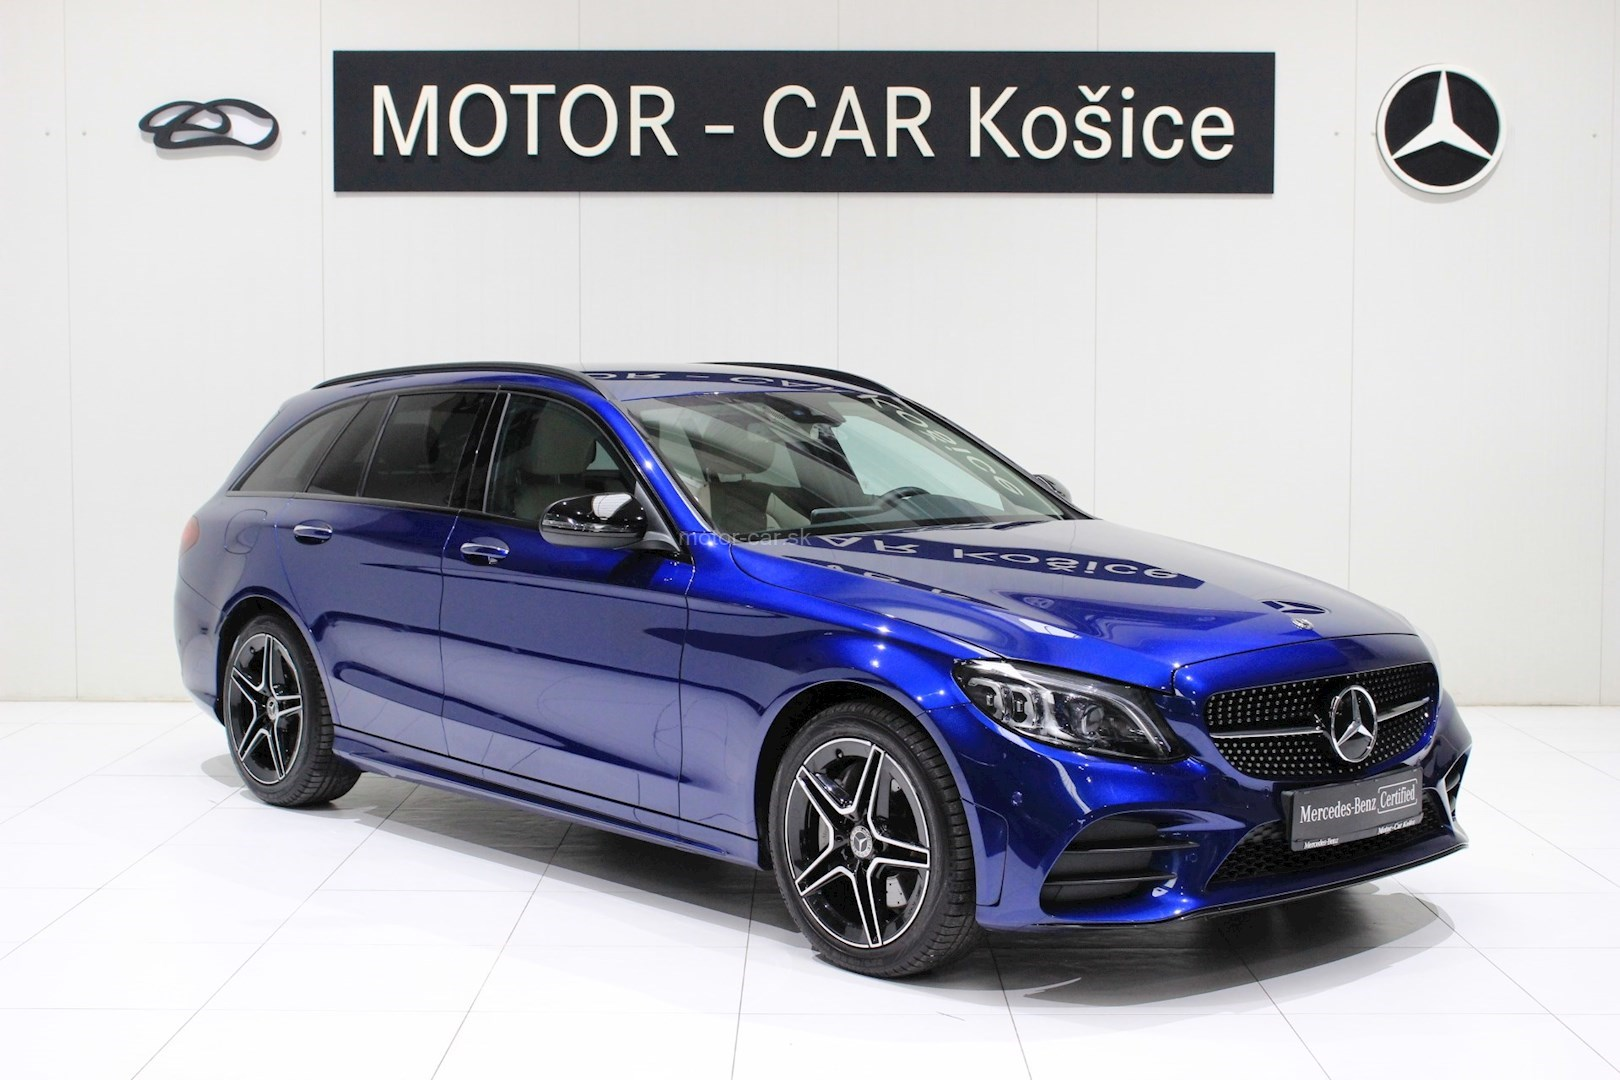 mercedes-benz c 300d 4matic kombi